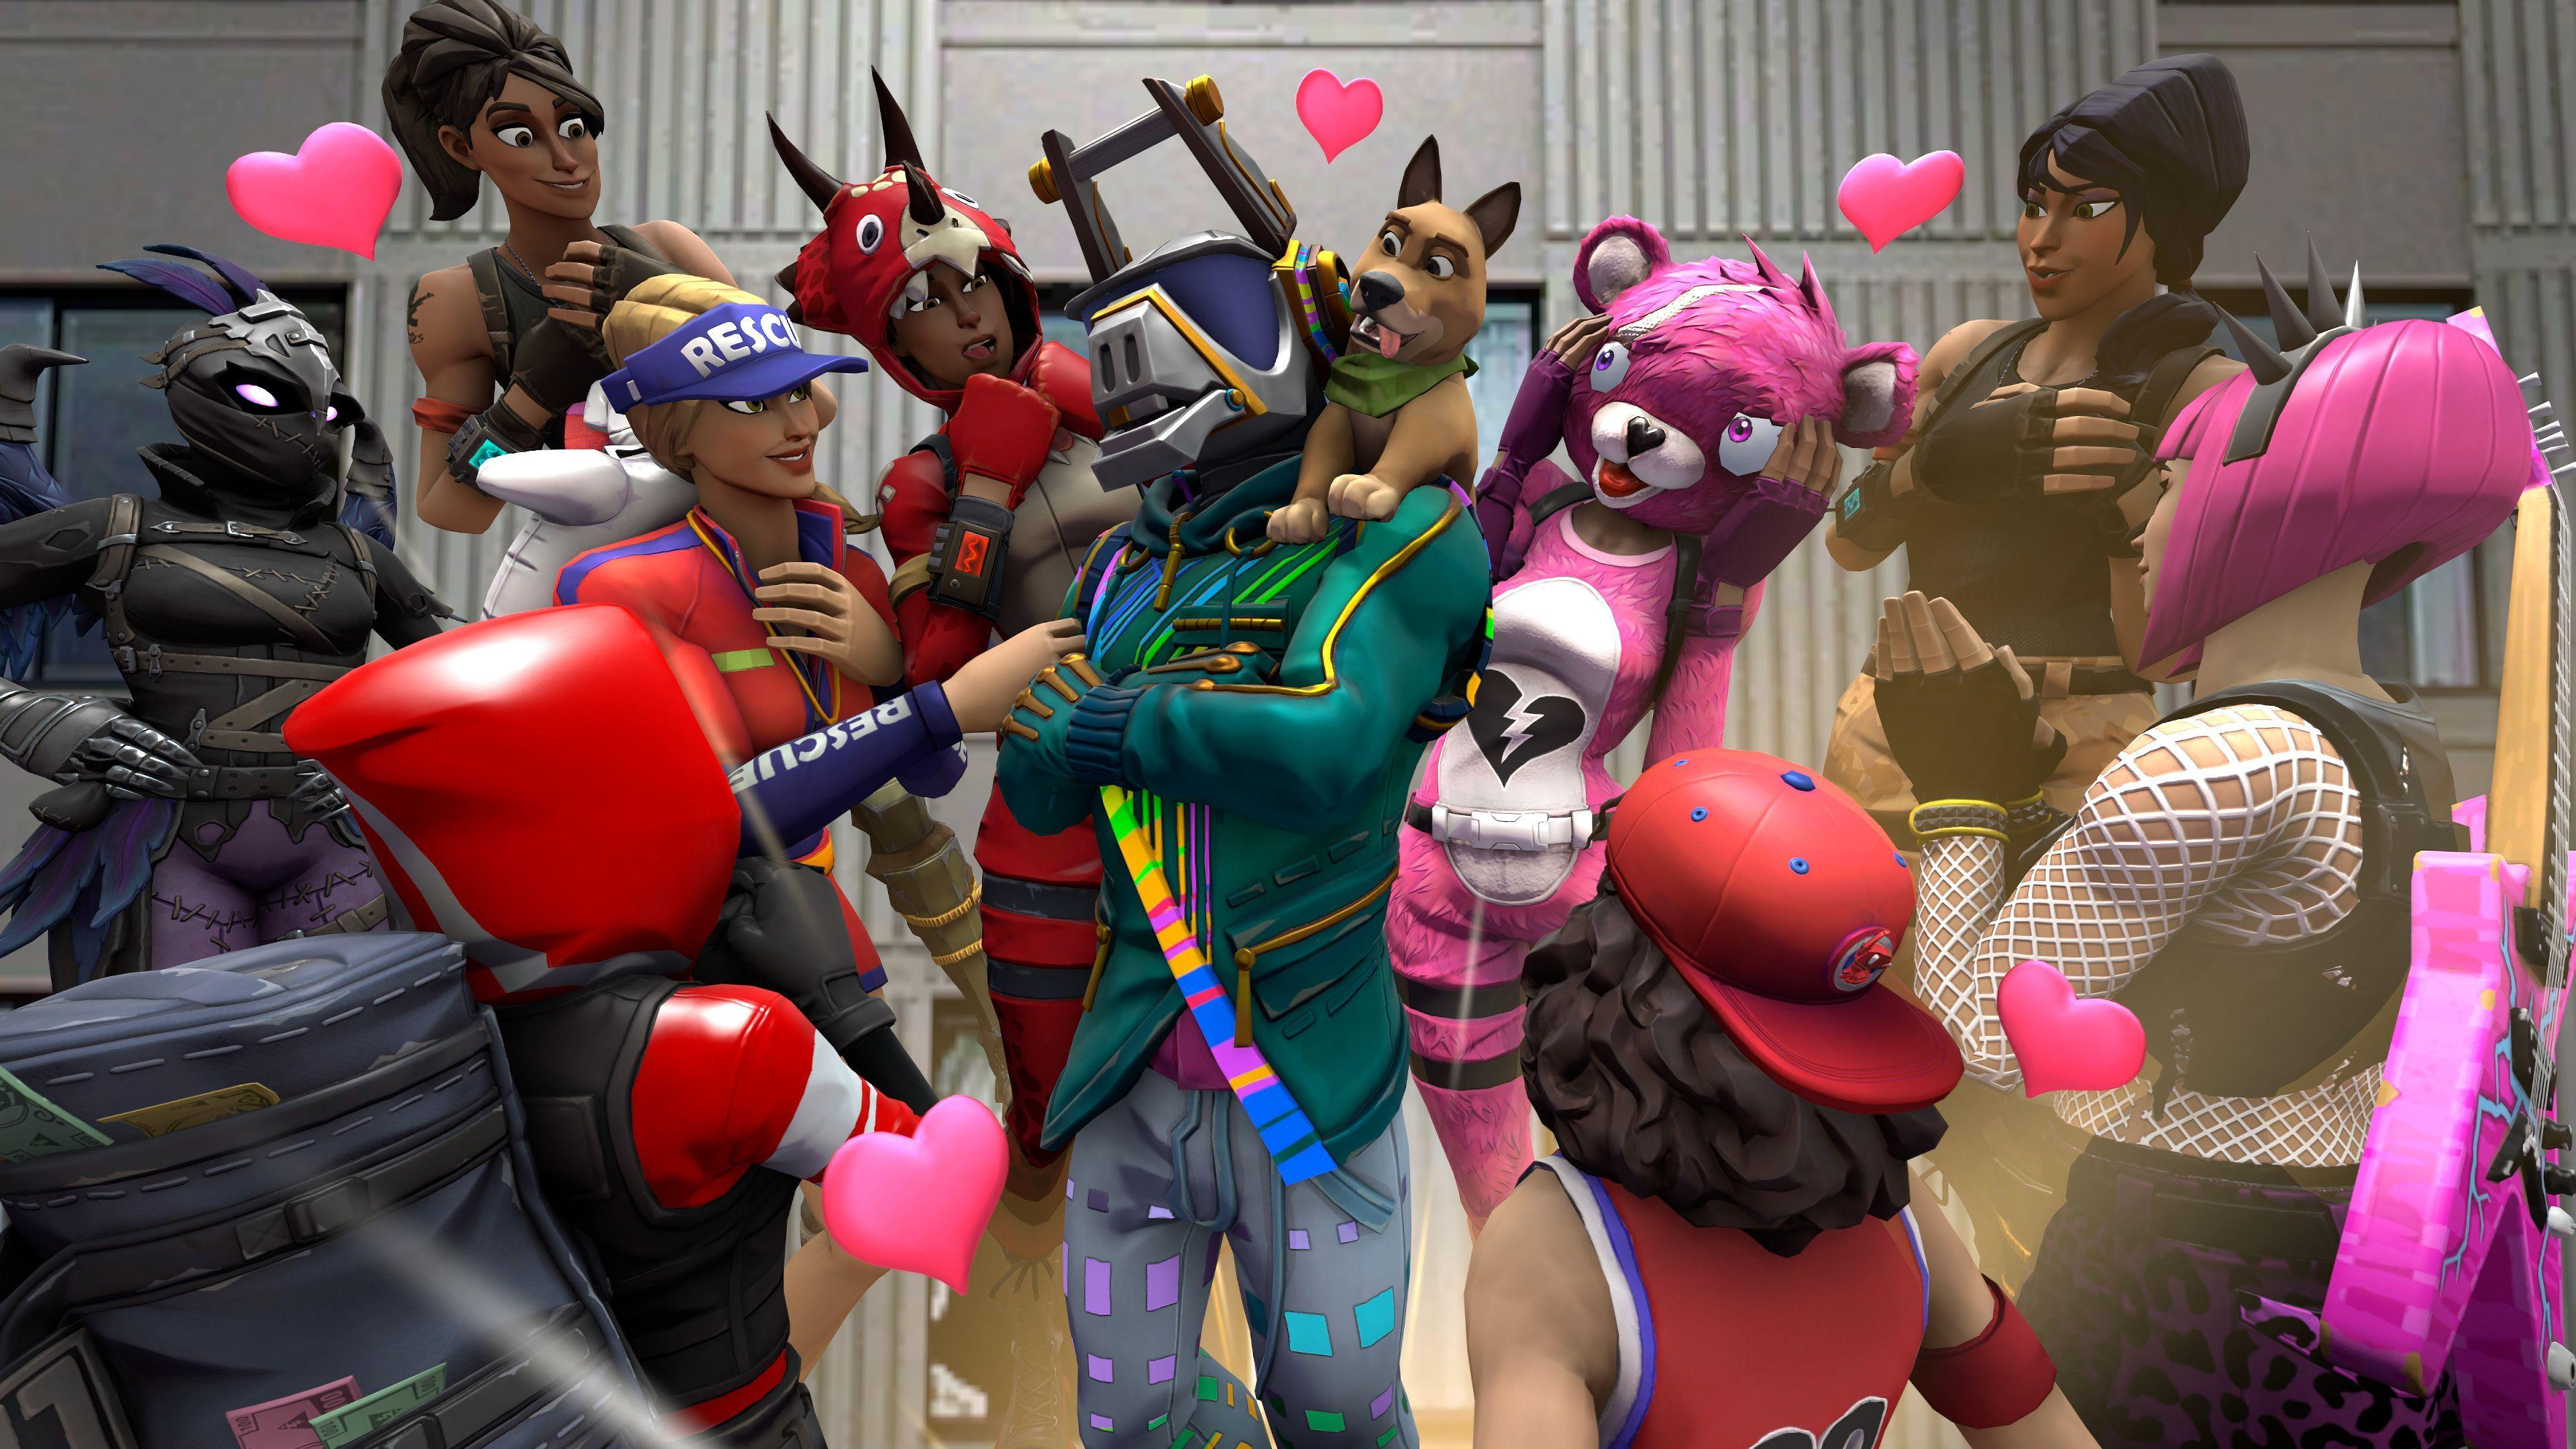 Pin by Failmob on HD Wallpapers (Desktop/Phone/Tablet) | Wallpaper ...